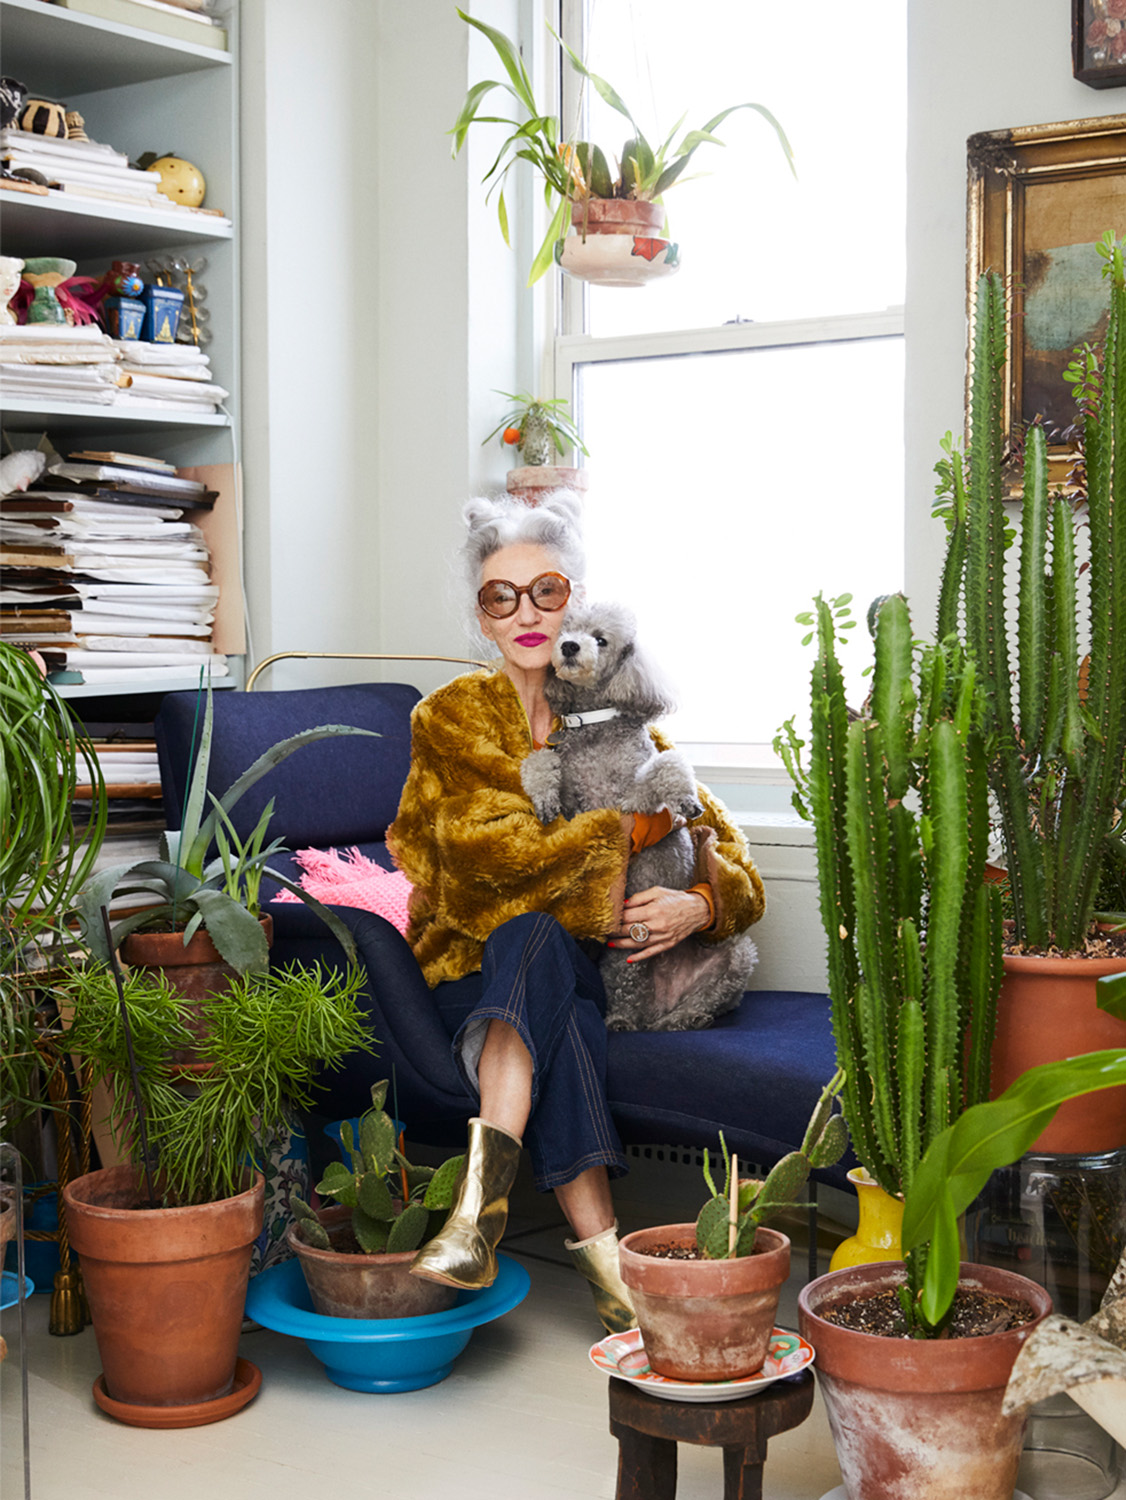 Linda Rodin/Four & Sons